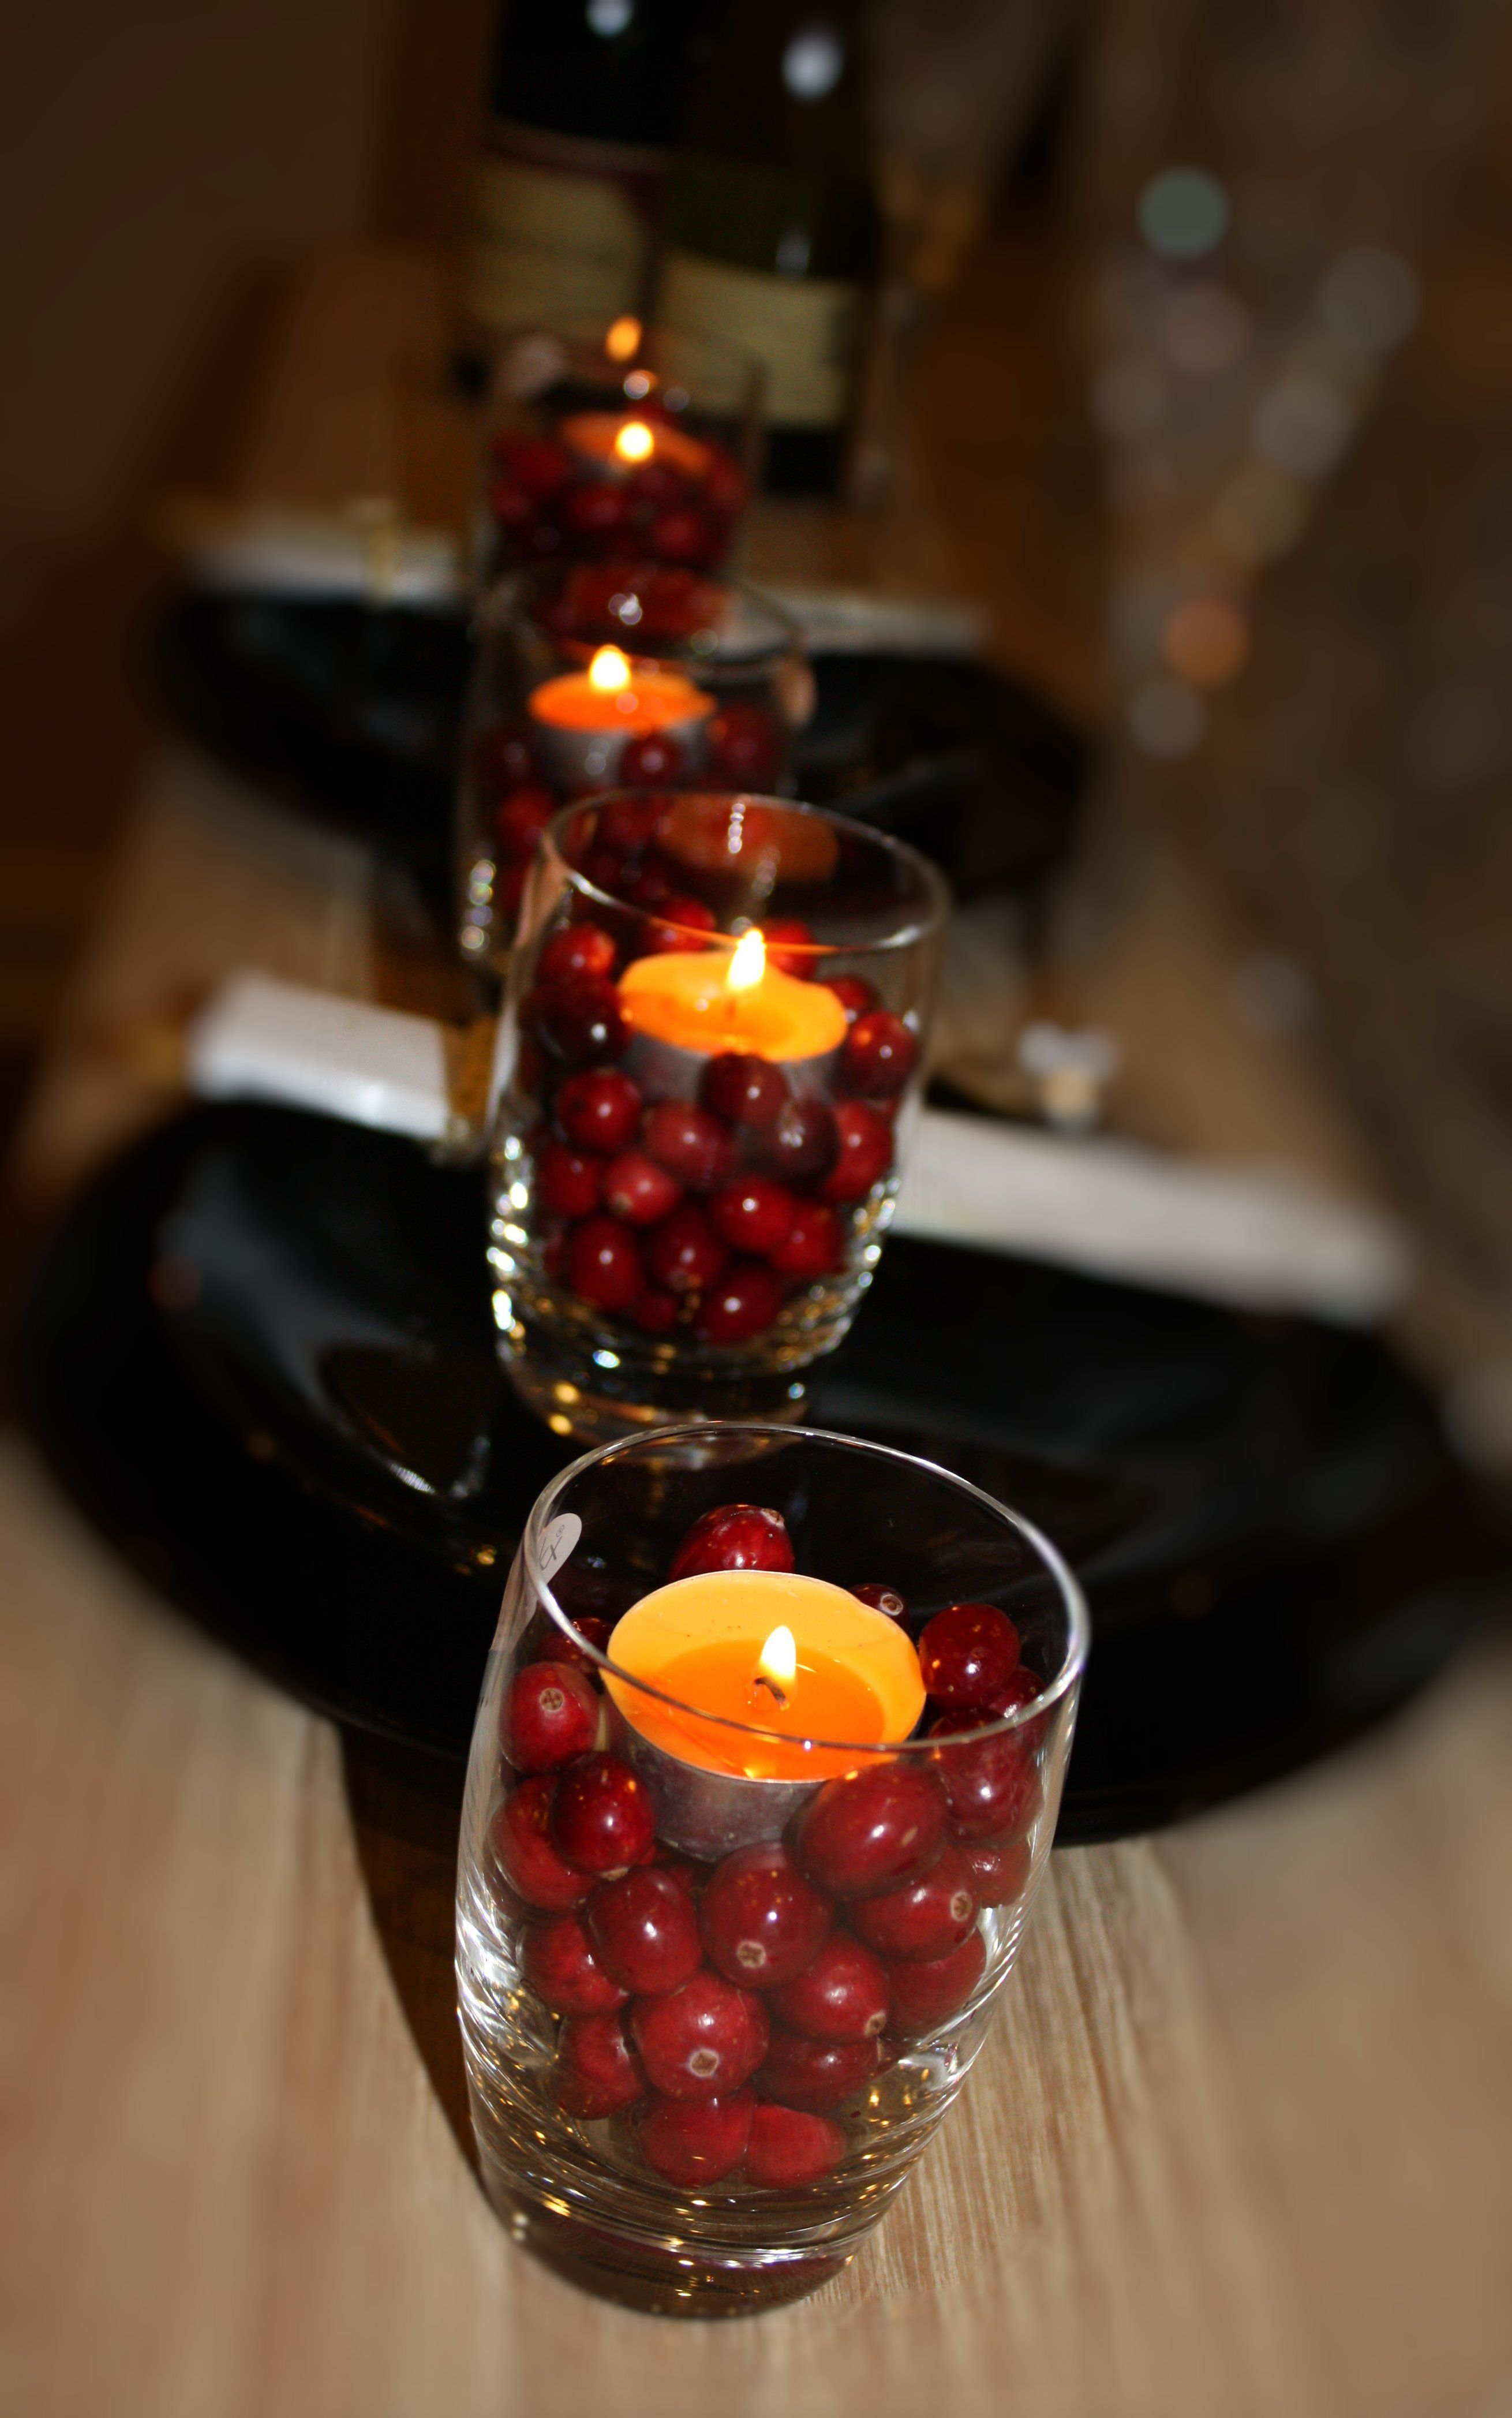 Diy Holiday Wedding Centerpieces Candles,Glass And Cranberries Httpthediamonddossier